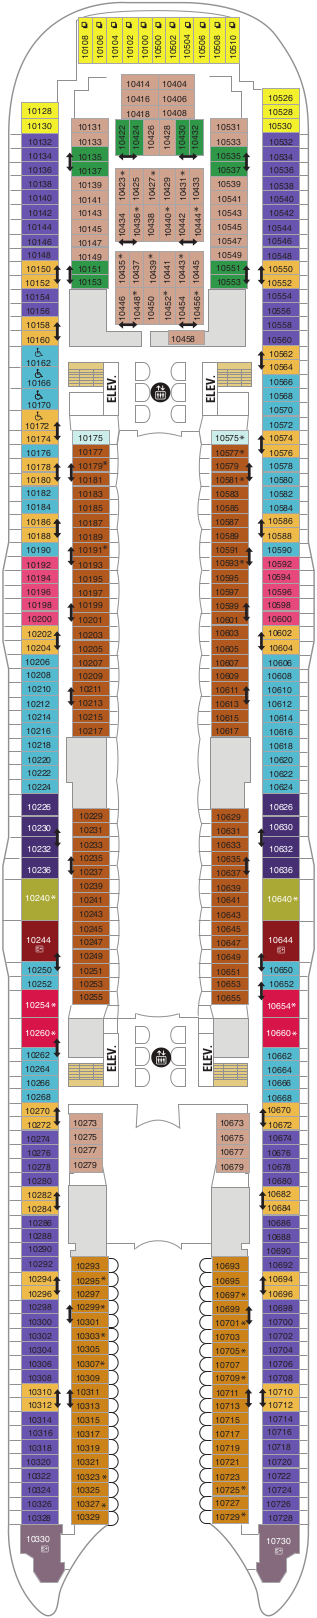 Oasis Of The Seas Deck 10 Deck Plan